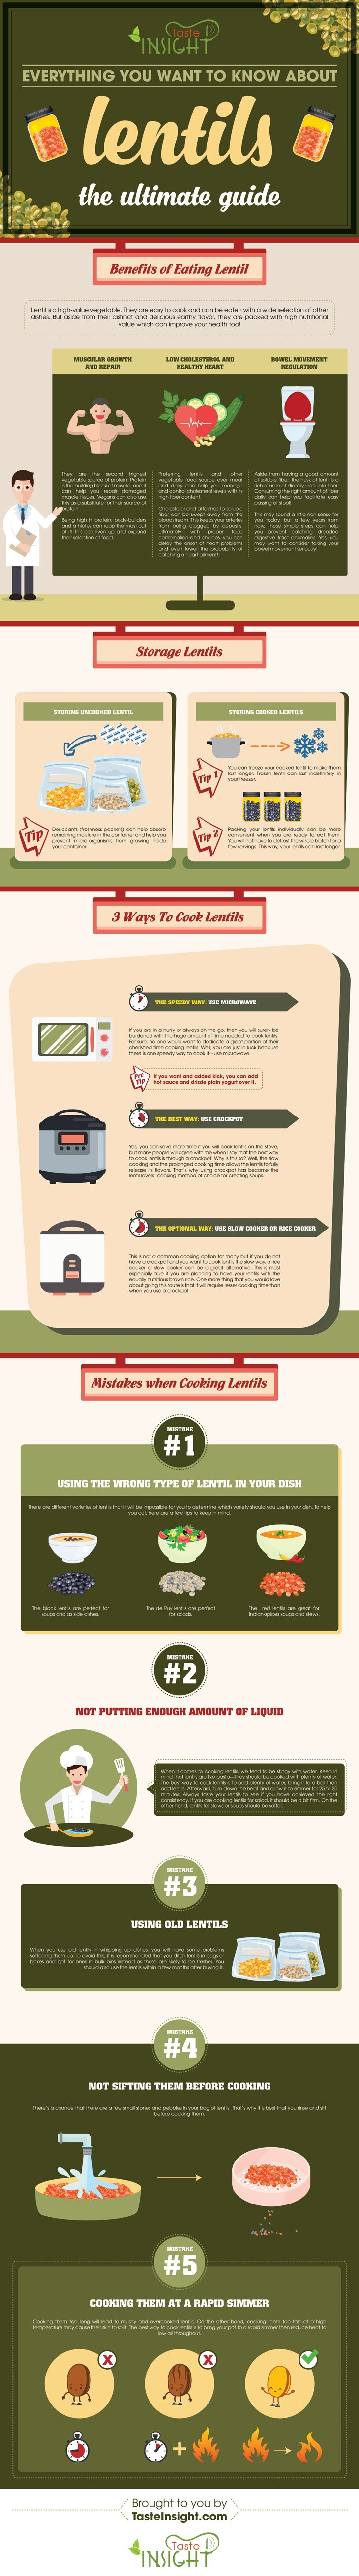 Everything You Need To Know About Lentils Infographic